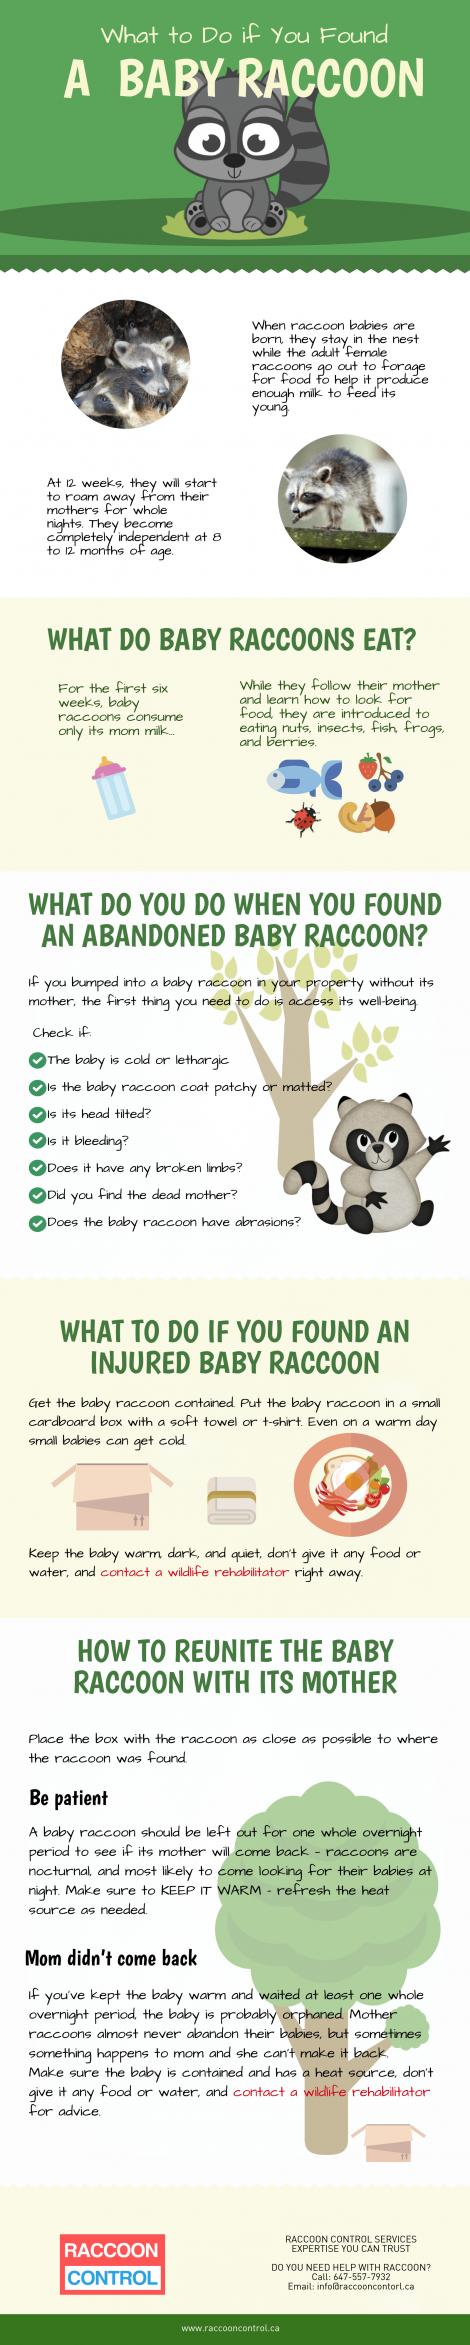 What to do if you found a baby racoon